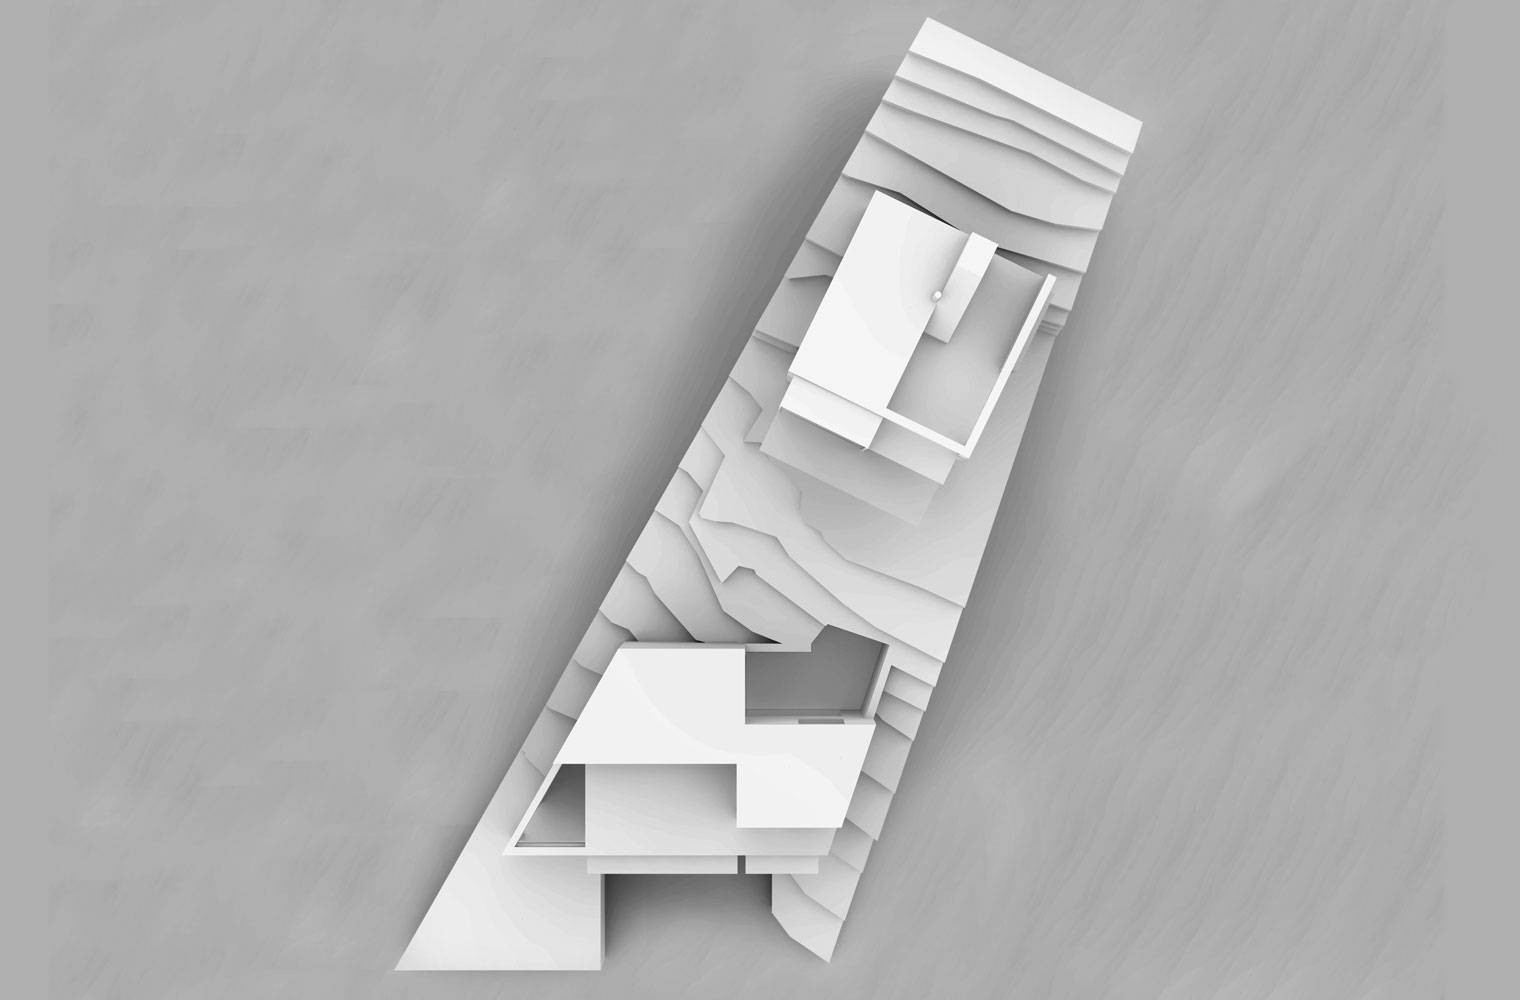 House Rese - Site Model